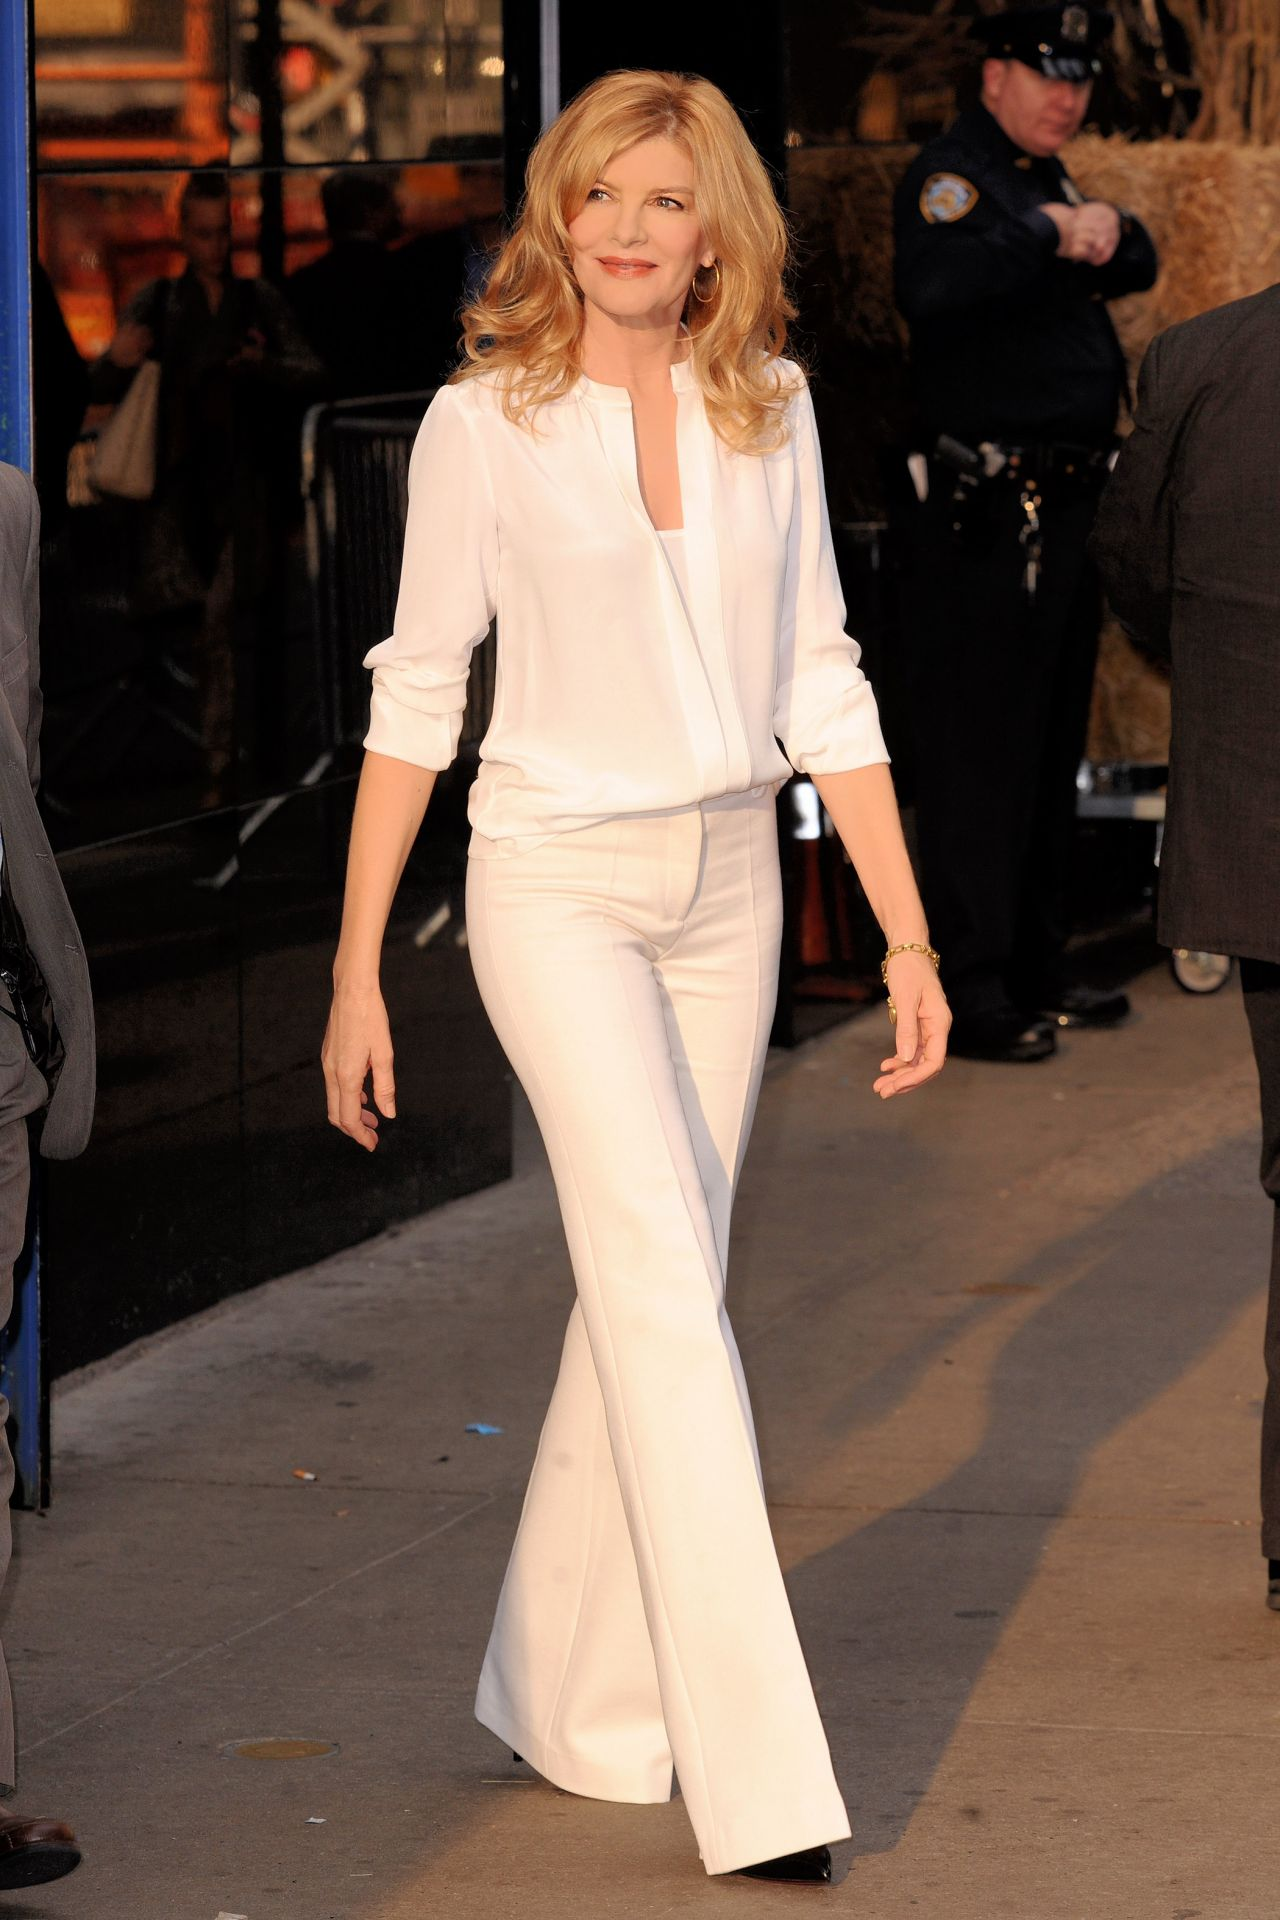 Rene Russo Arriving to Appear on Good Morning America in New York City  October 2014